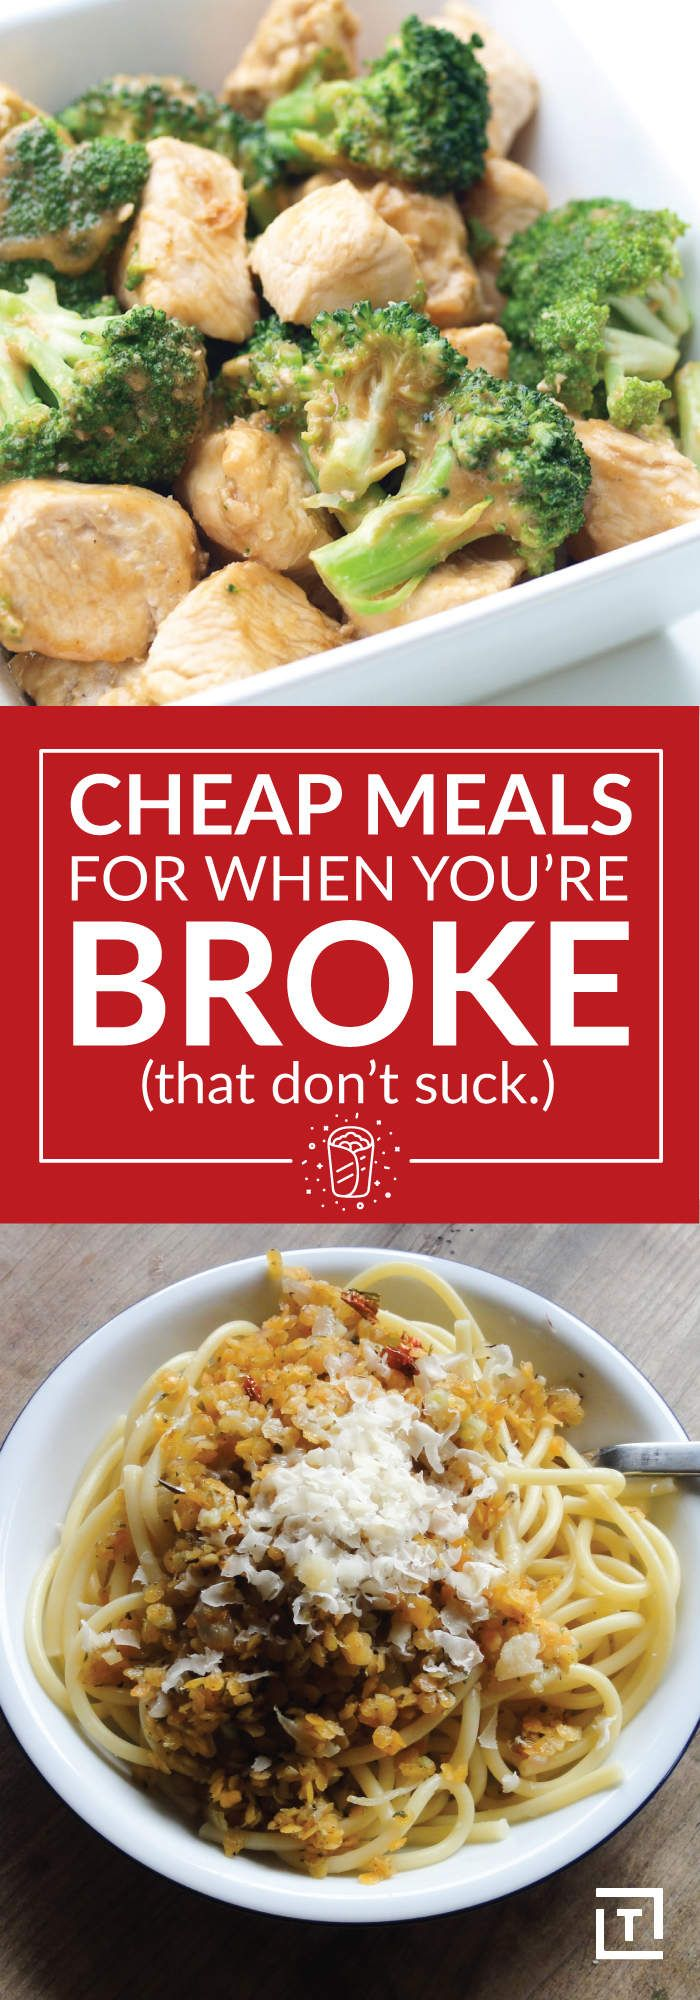 Easy, Cheap Meal Ideas to Cook When You're Broke - Thrillist